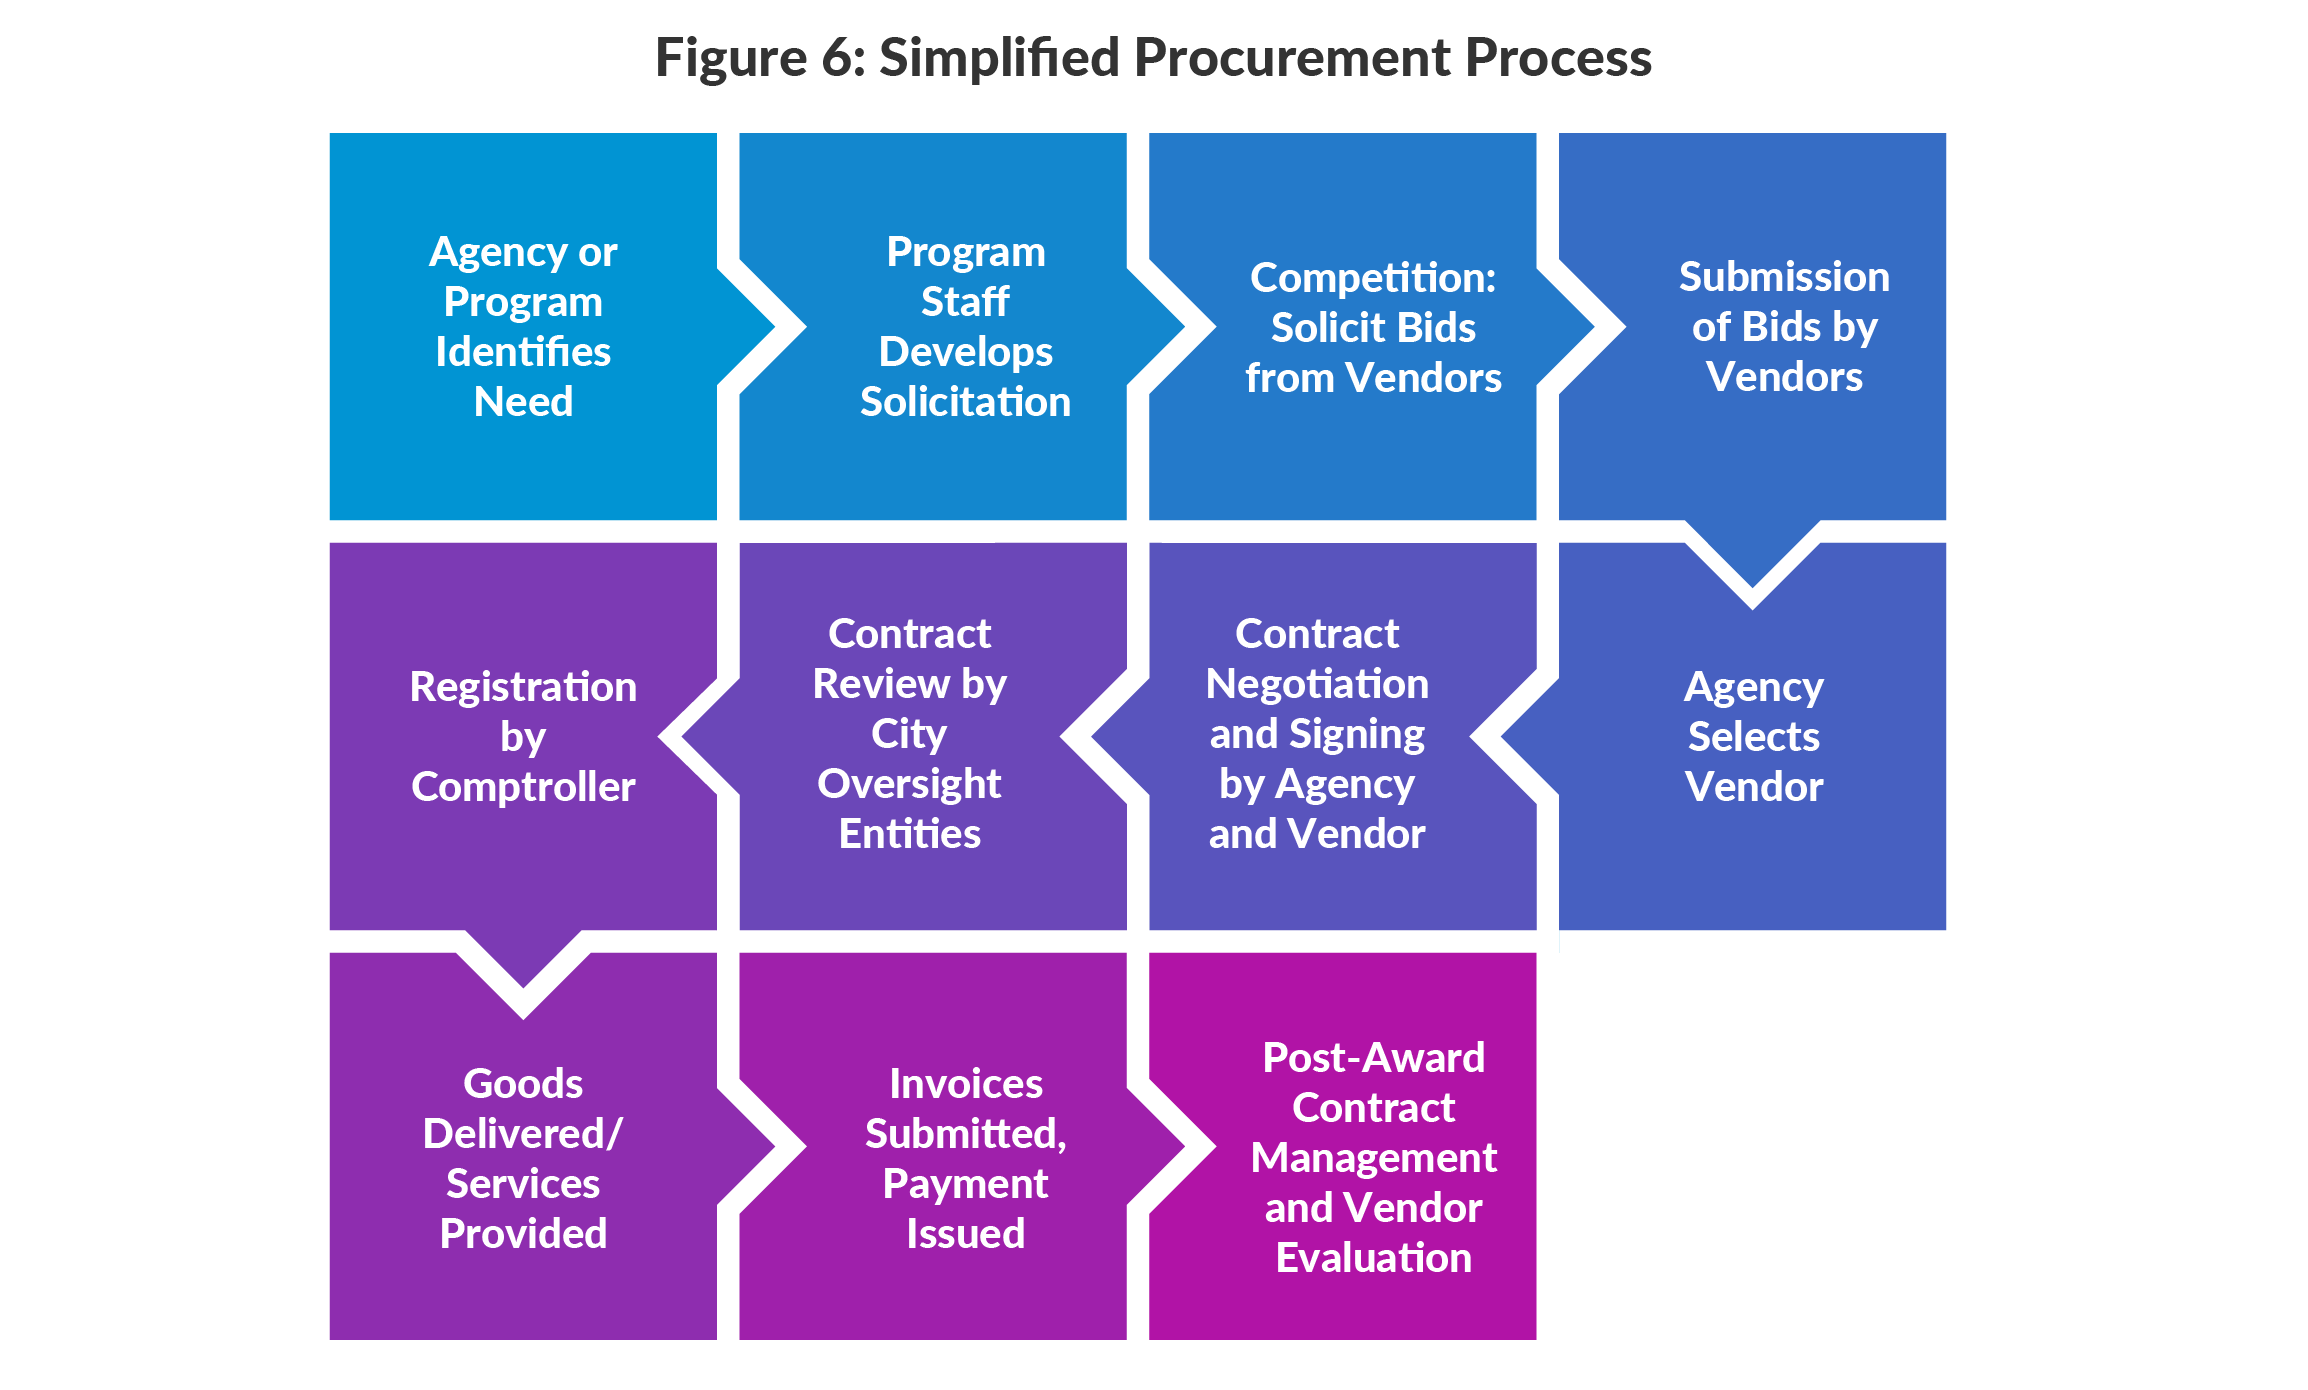 Figure 6: Simplified Procurement Process